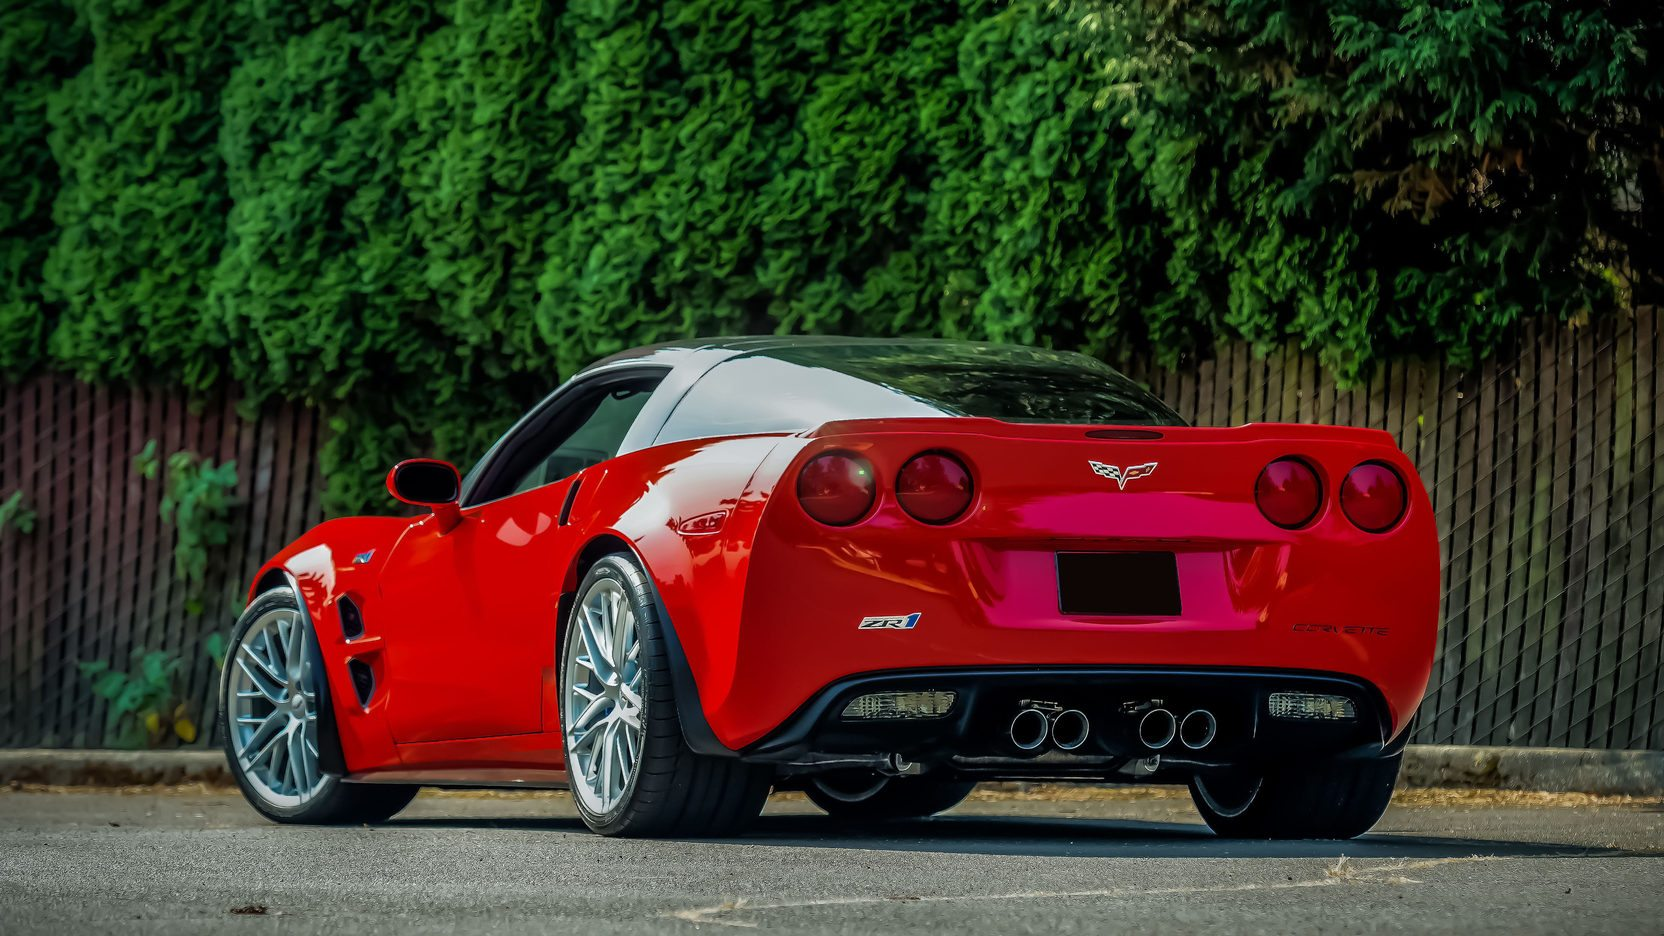 2010 Chevrolet Corvette ZR1 | Image Gallery & Pictures